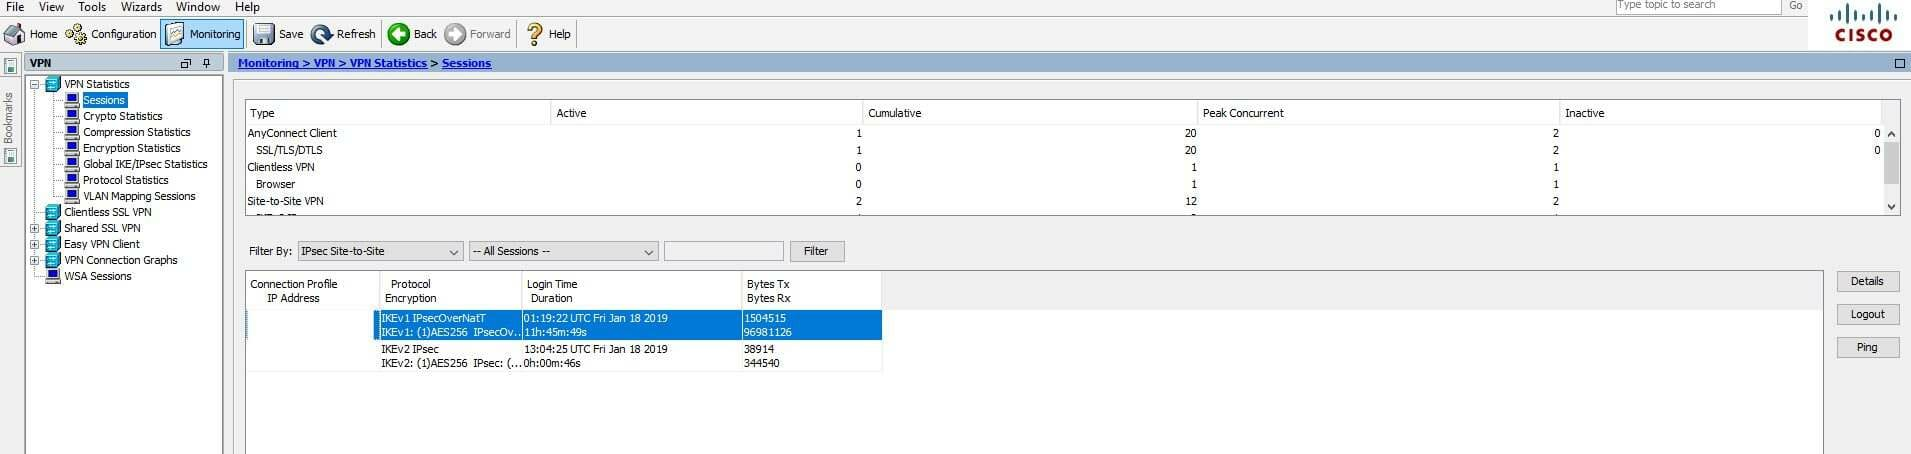 CONFIGURING THE CISCO ASA - Marco Tran